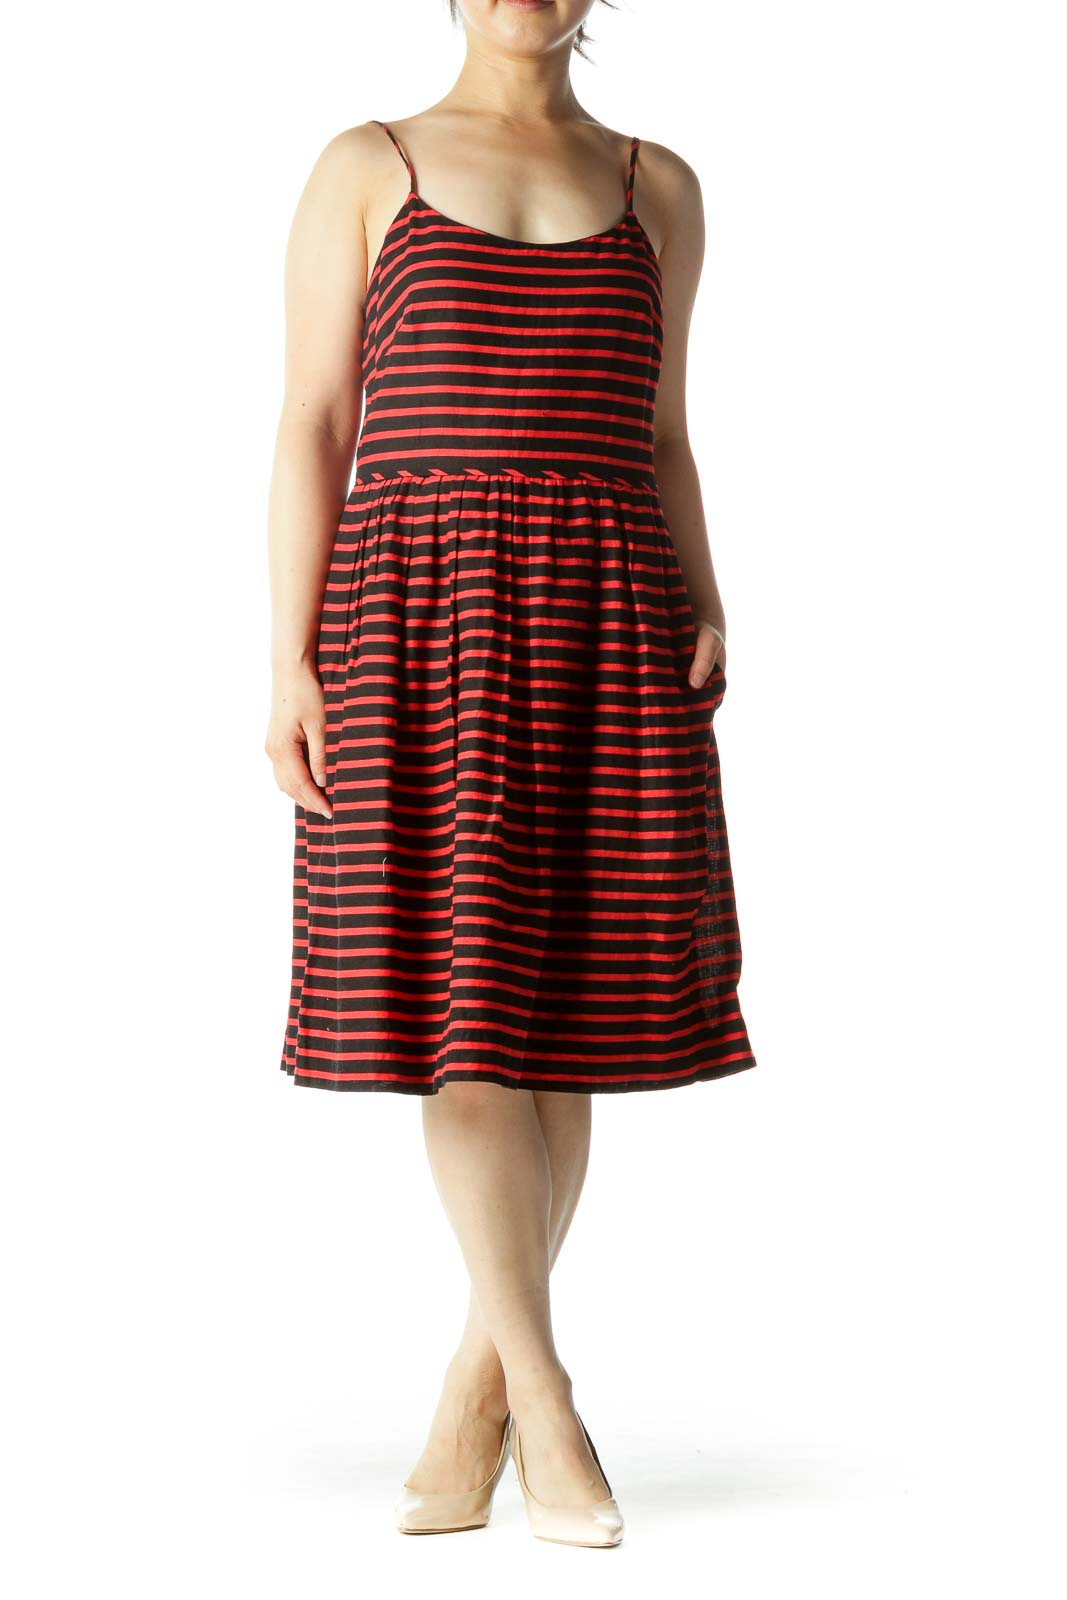 Red Black Linen Cotton Striped Spaghetti Strap Pocketed Dress